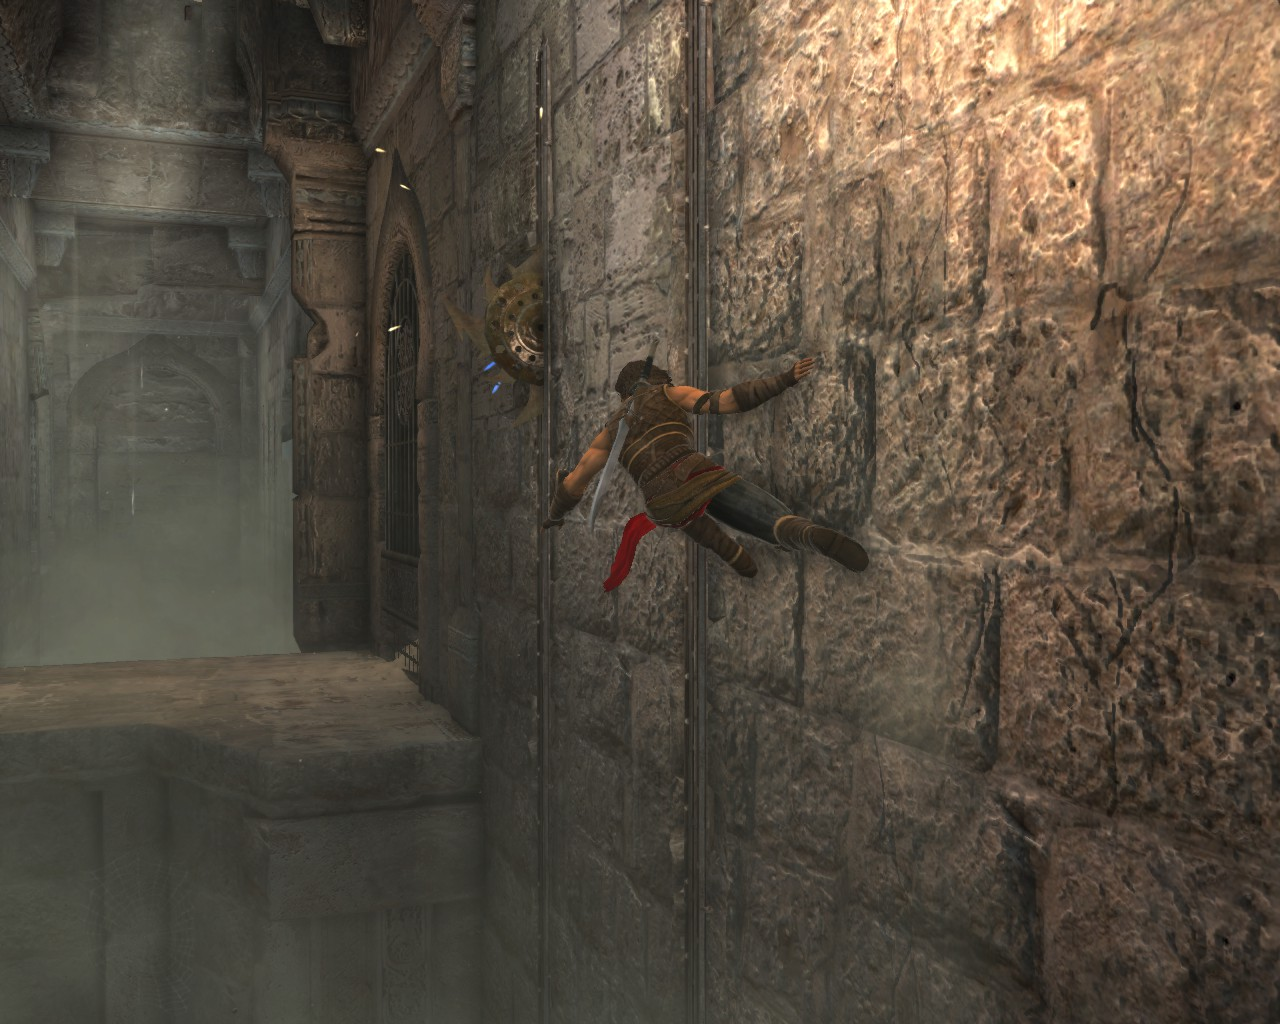 Prince of Persia 2014-06-03 23-37-10-55.jpg - Prince of Persia: The Forgotten Sands